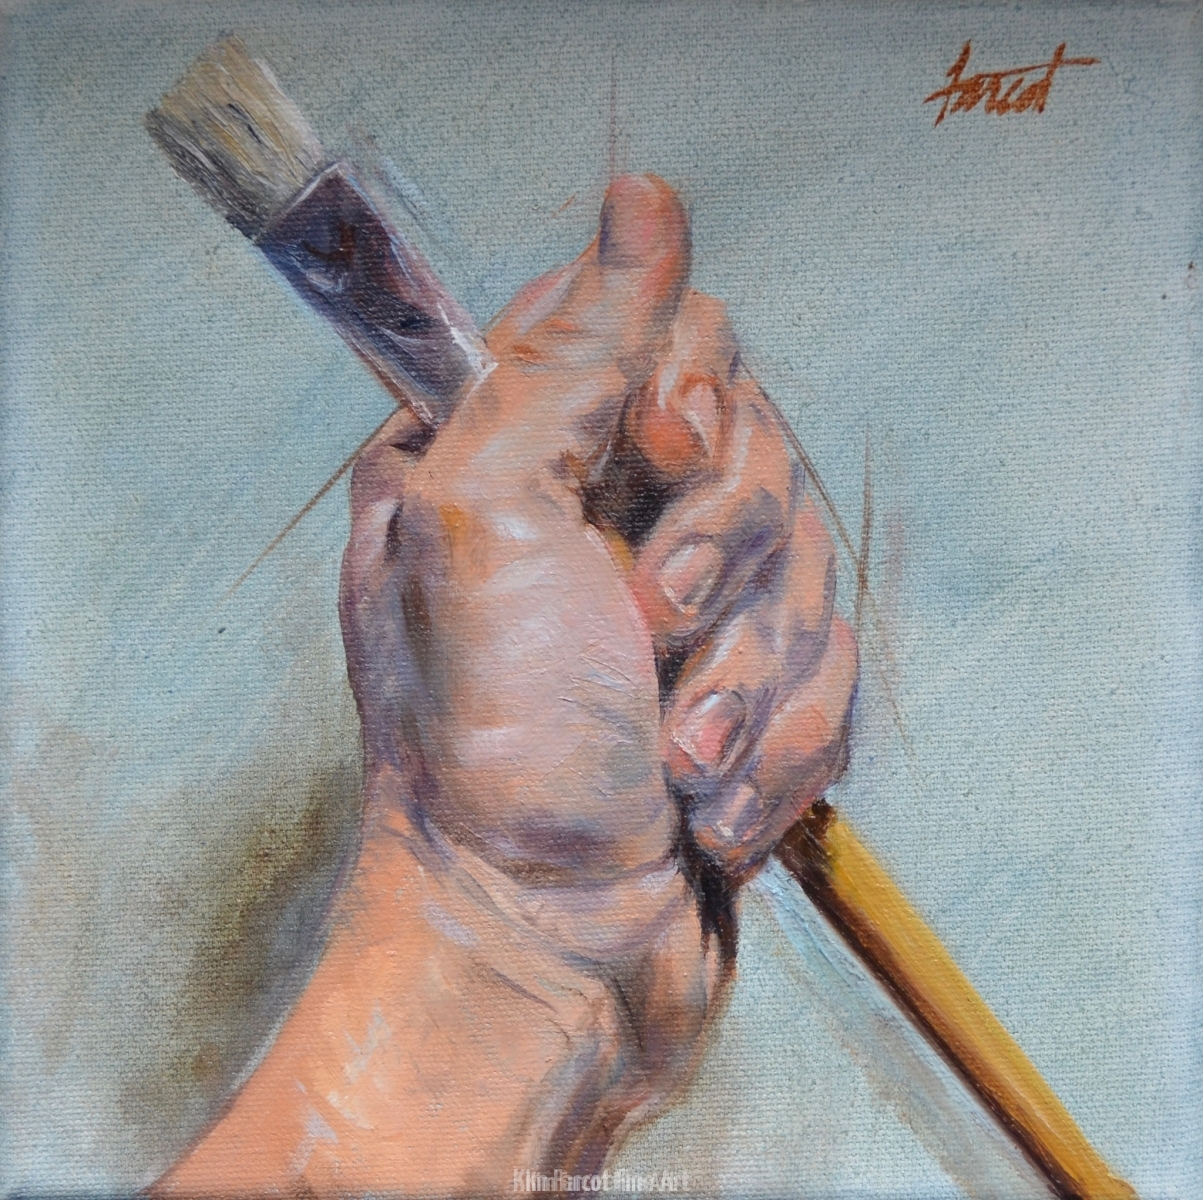 Artist's Hand, private collection, Saudi Arabia